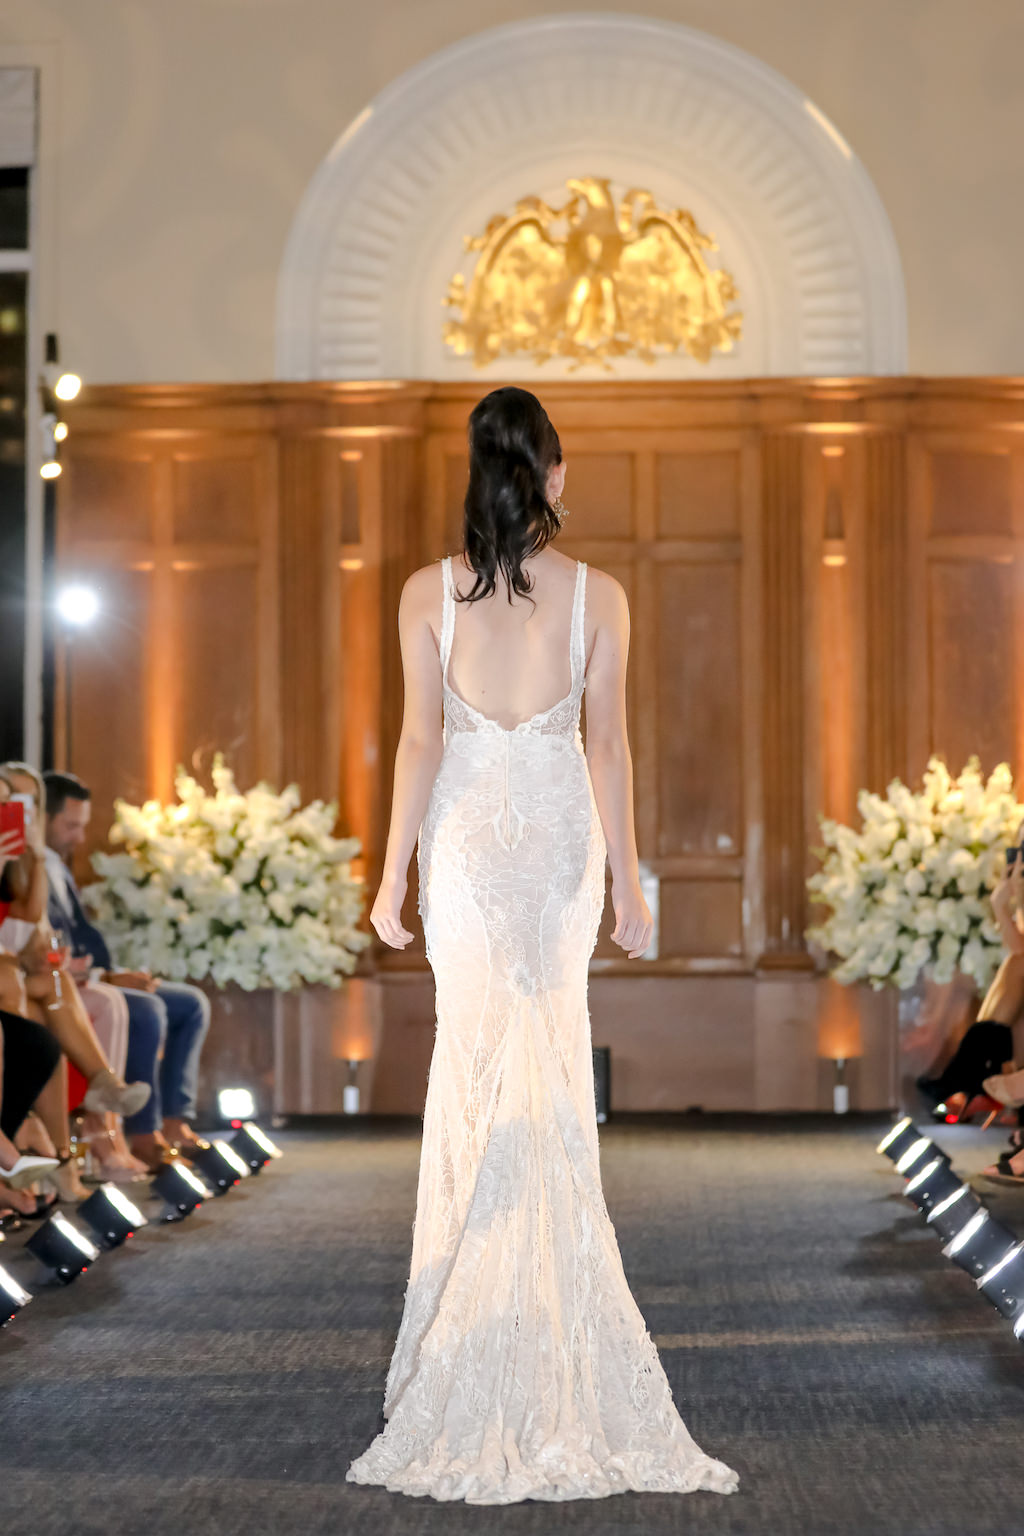 Sleek Lace Tank Top Strap and Low Back Wedding Dress   Historic Downtown Tampa Wedding Venue Le Meridien   Hair and Makeup Michele Renee the Studio   Marry Me Tampa Bay and Isabel O'Neil Bridal Fashion Runway Show 2018   Tampa Wedding Photographer Lifelong Photography Studios